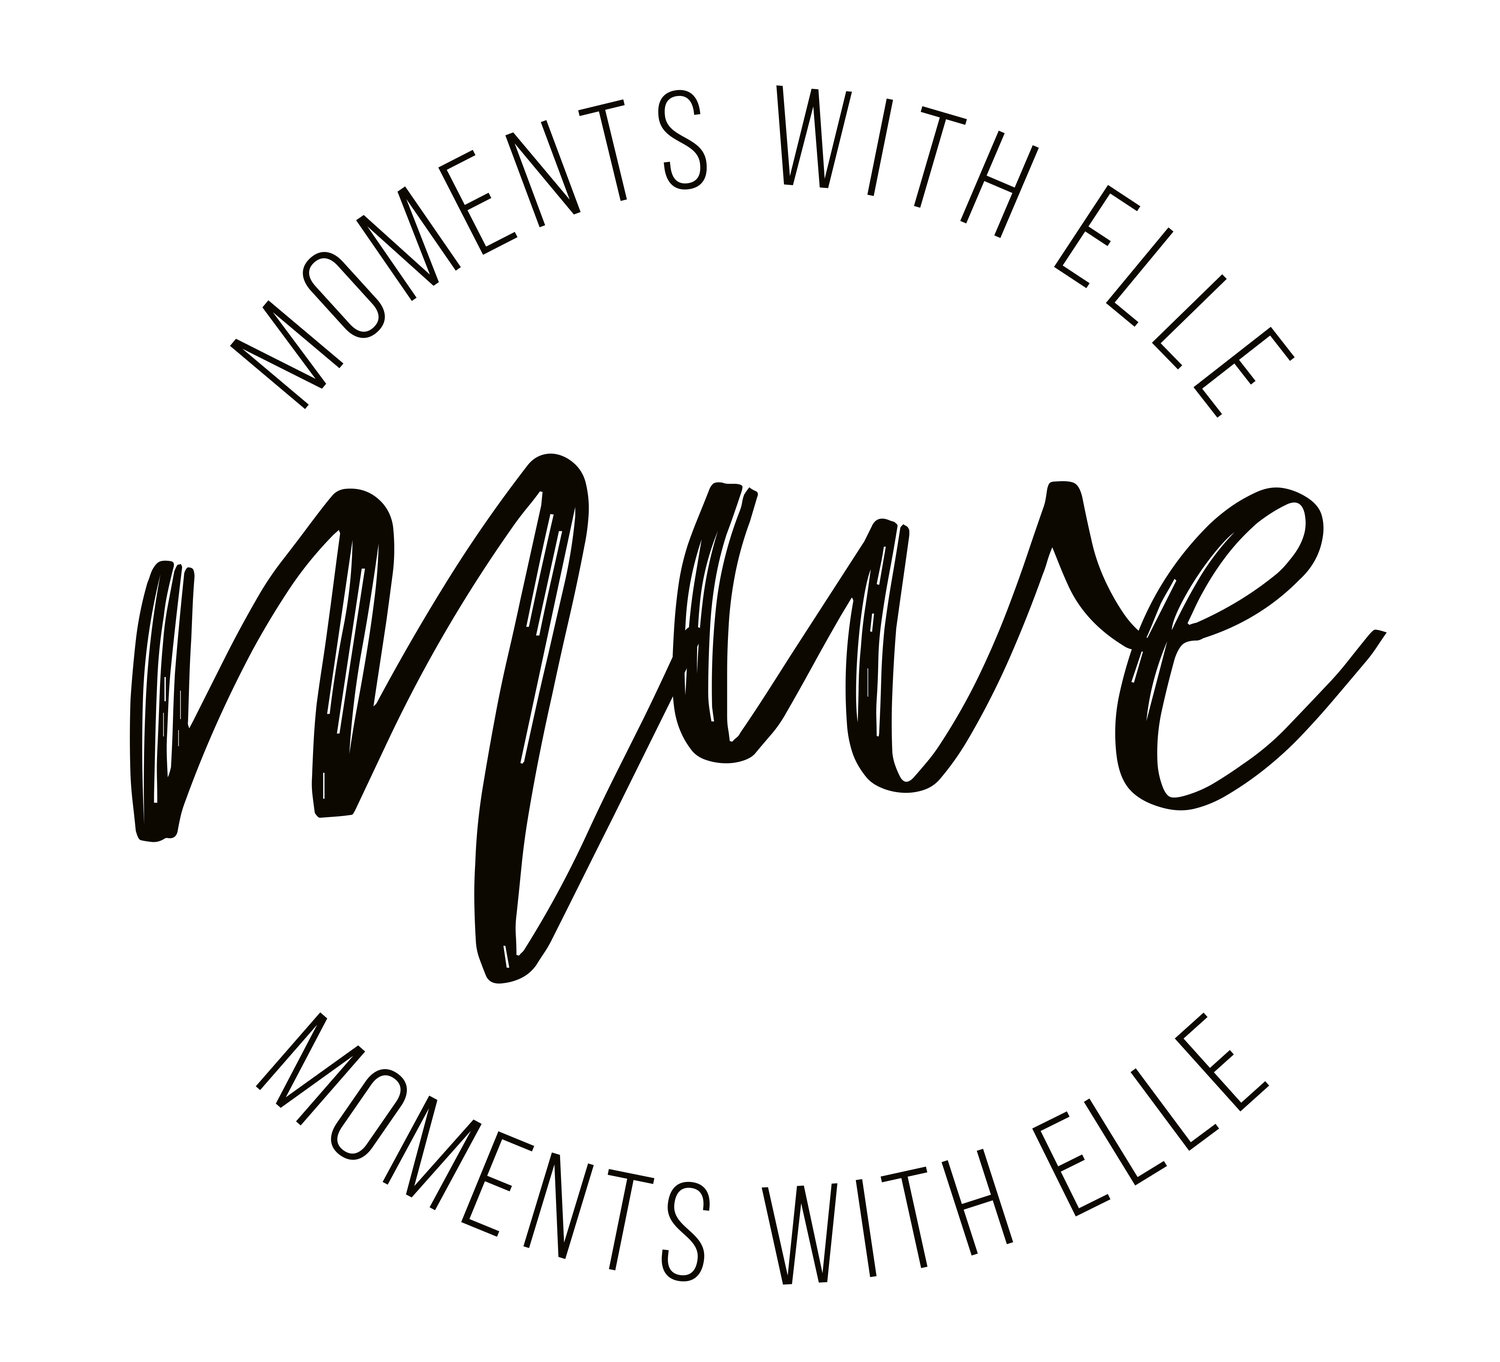 moments with elle